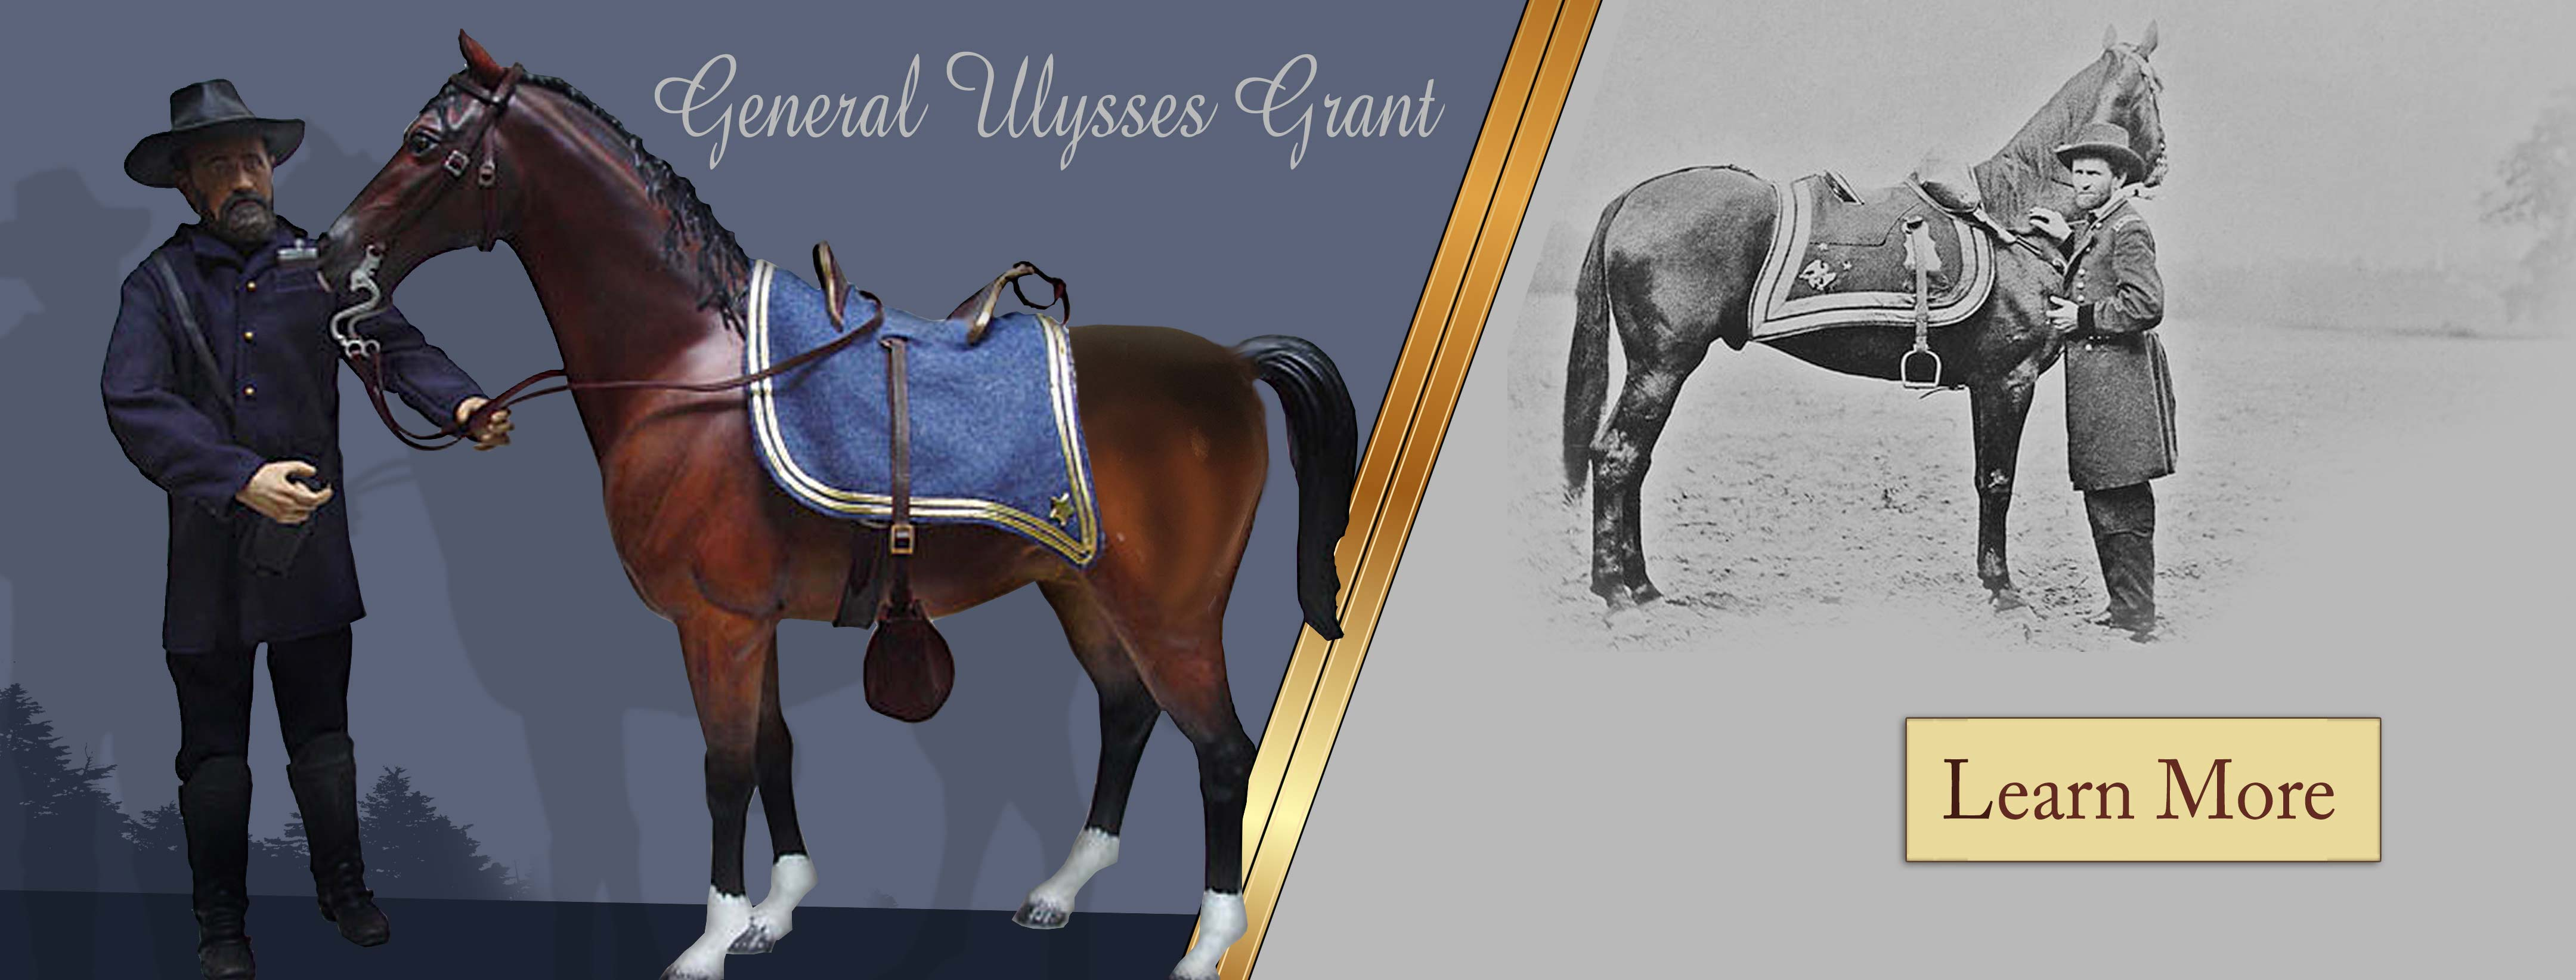 Discover Great Packages - General Grant Saddle Package